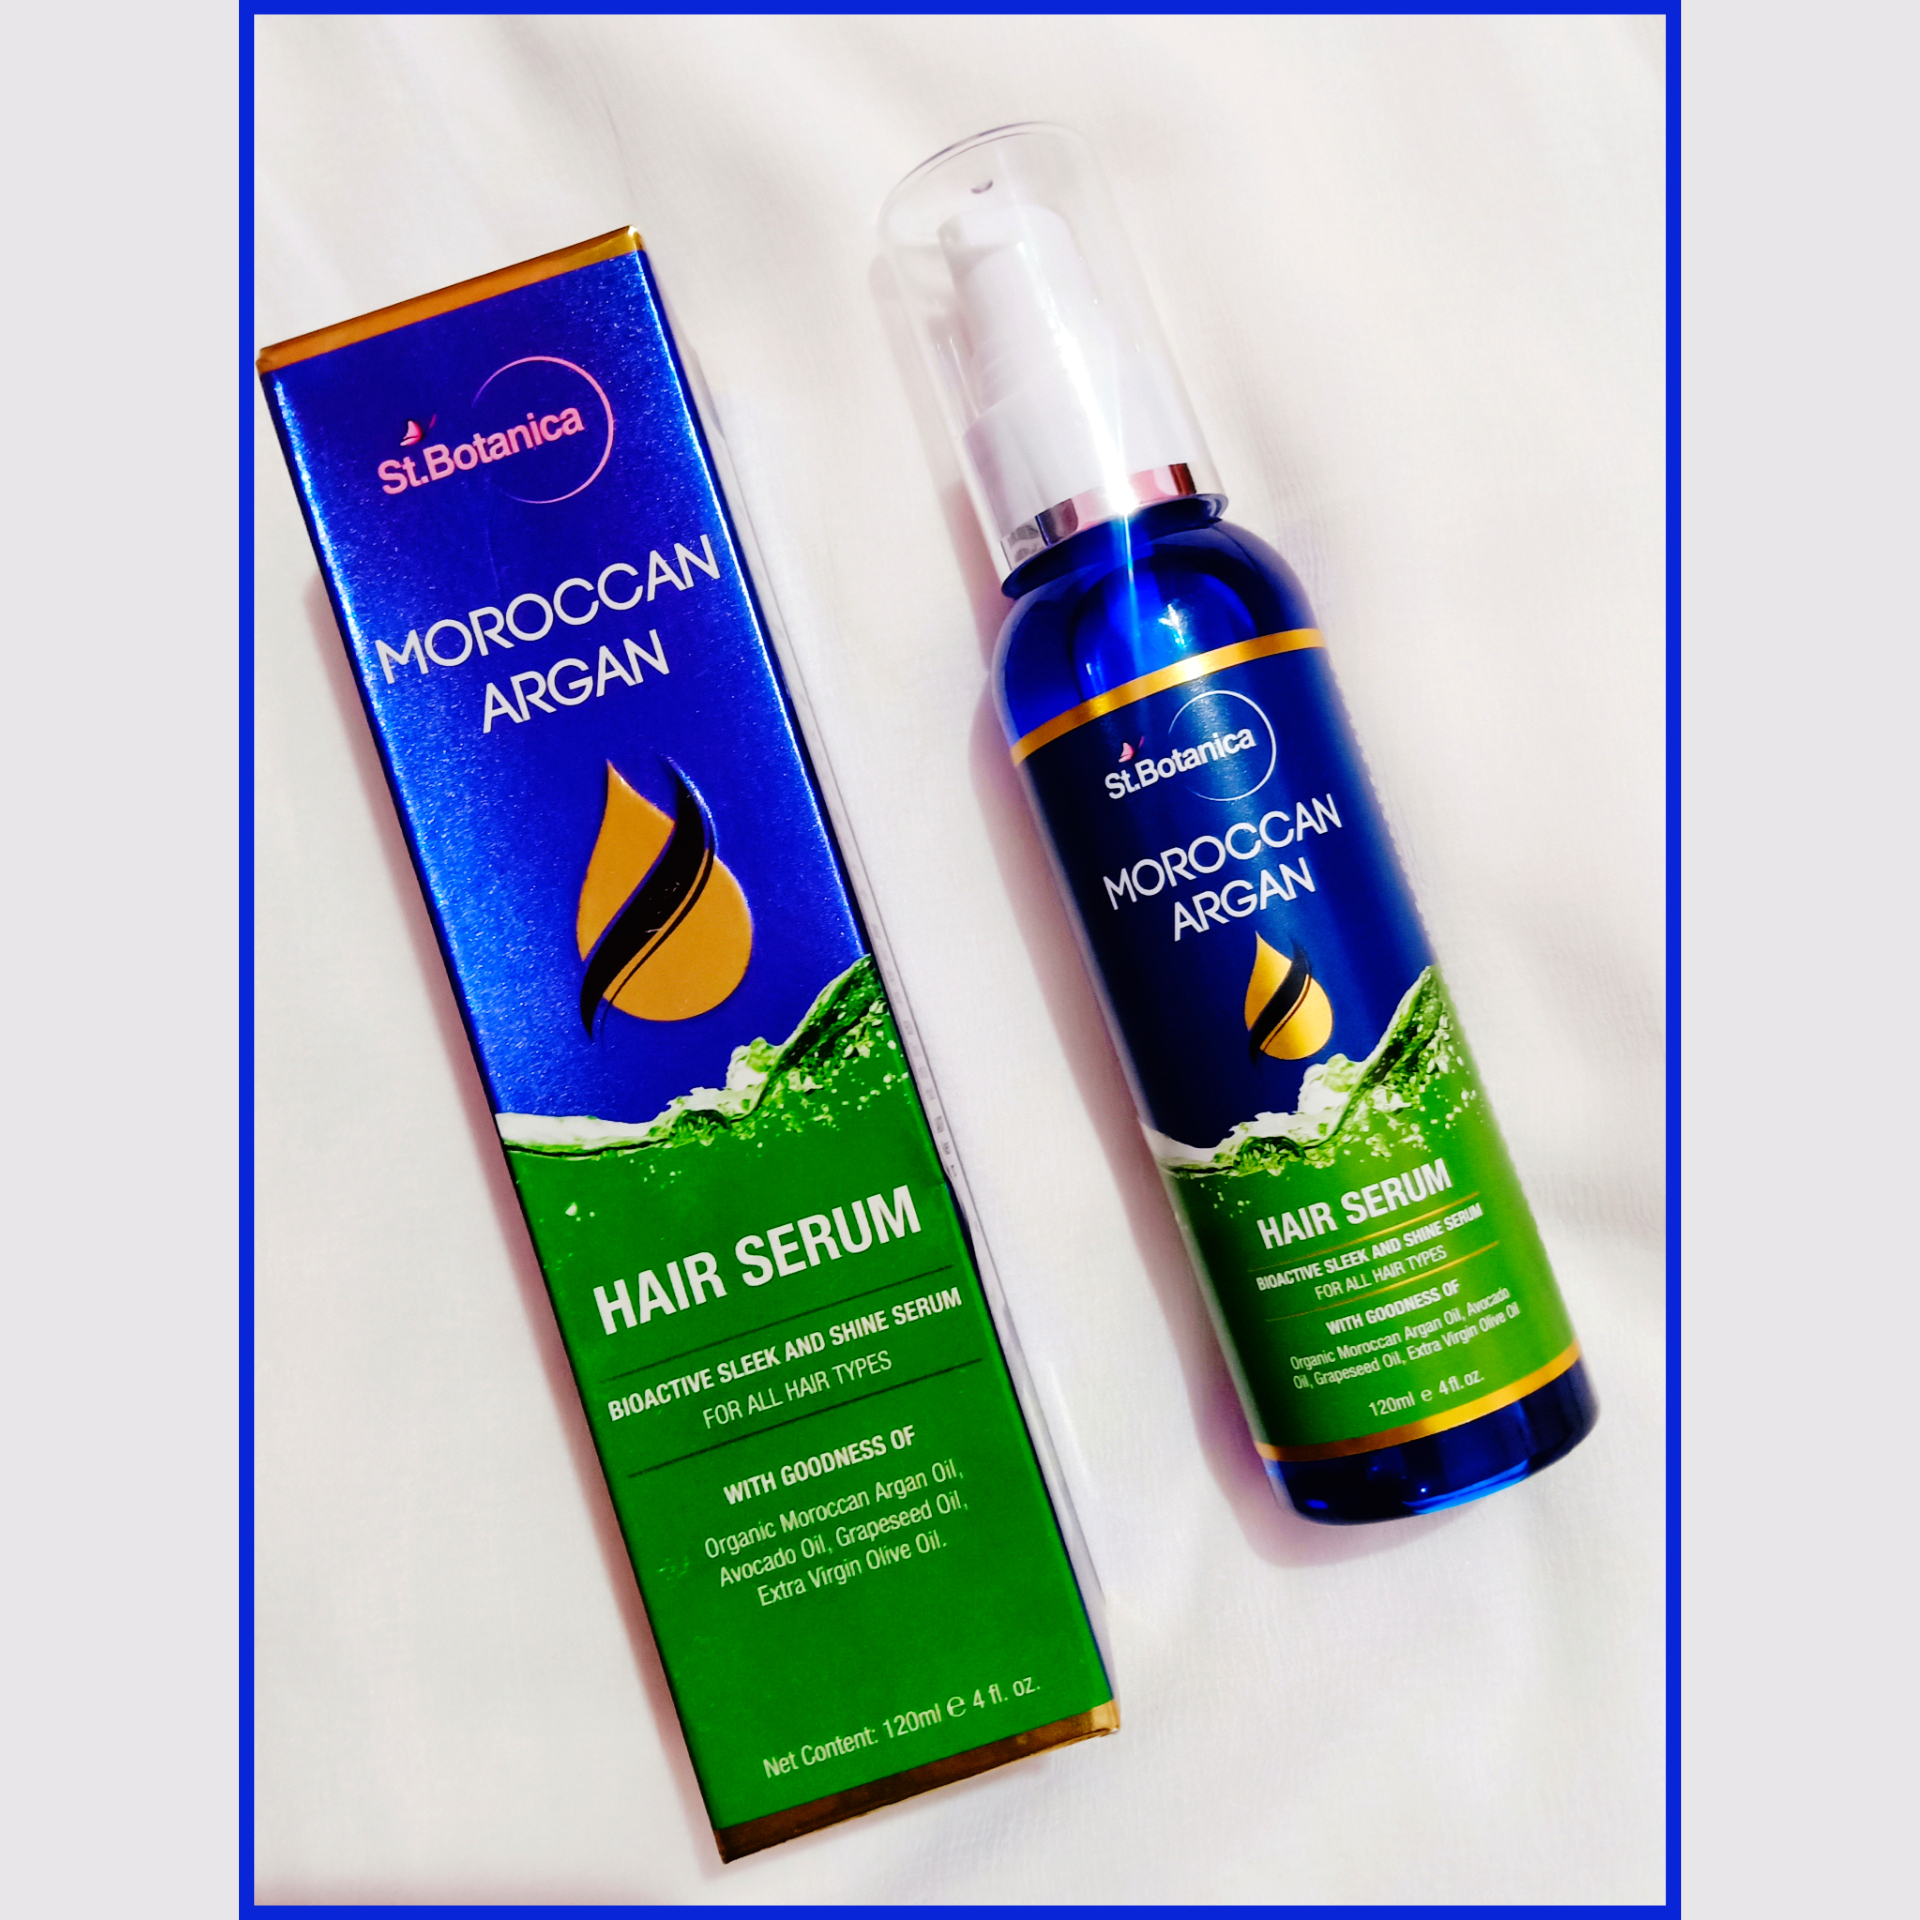 St.Botanica Moroccan Argan Hair Serum-Best hair serum-By reviewsbydipali-3